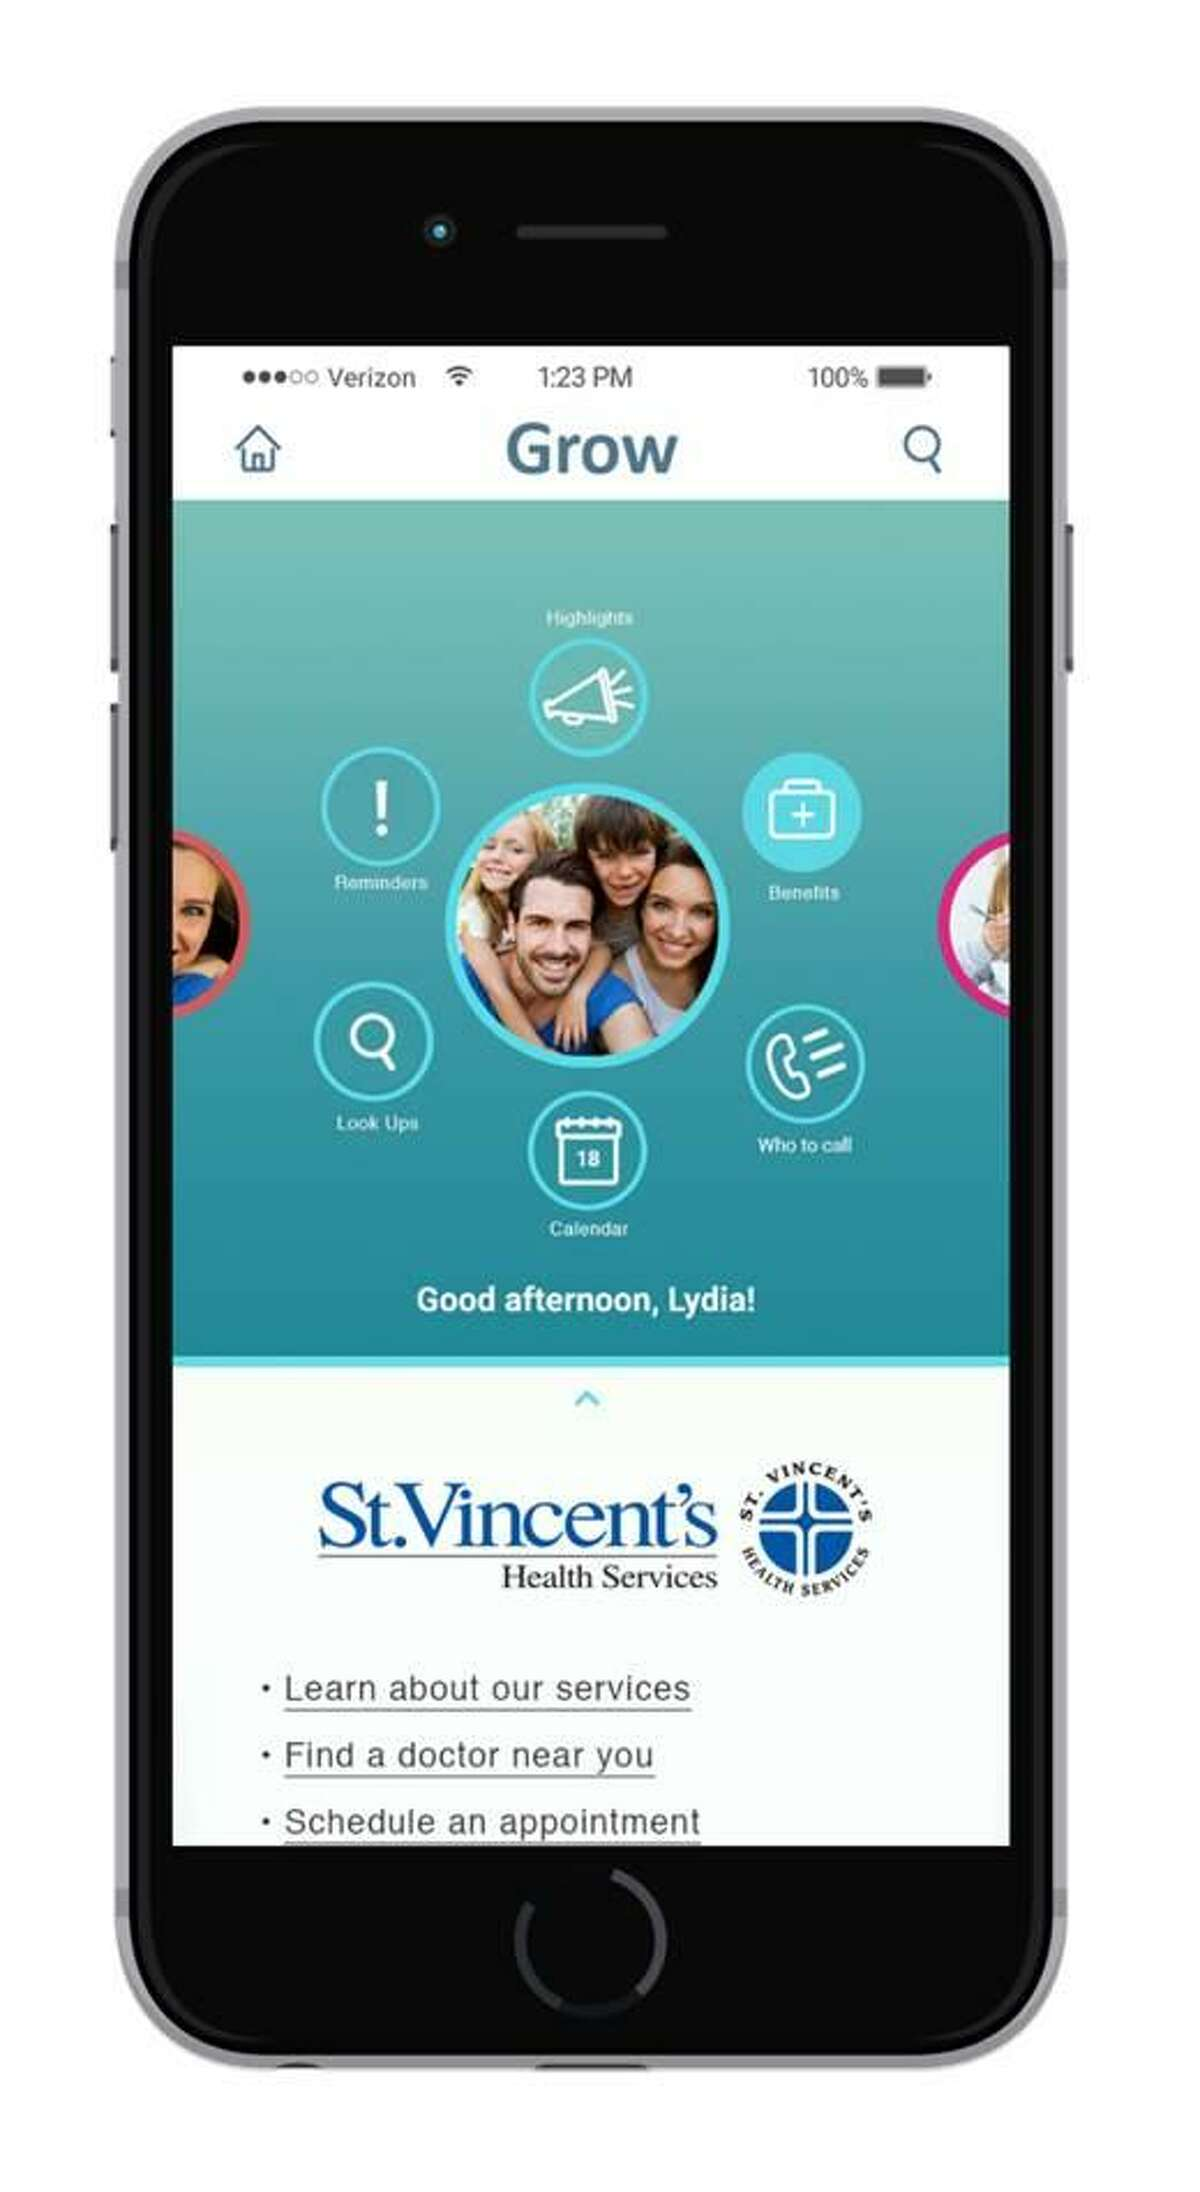 St. Vincent's Medical Center in Bridgeport is now connecting patients to health services through the mobile app Grow Family Health Organizer, which allows users to find local doctors, make appointments and do other health-related tasks. Images courtesy of St. Vincent's Medical Center.